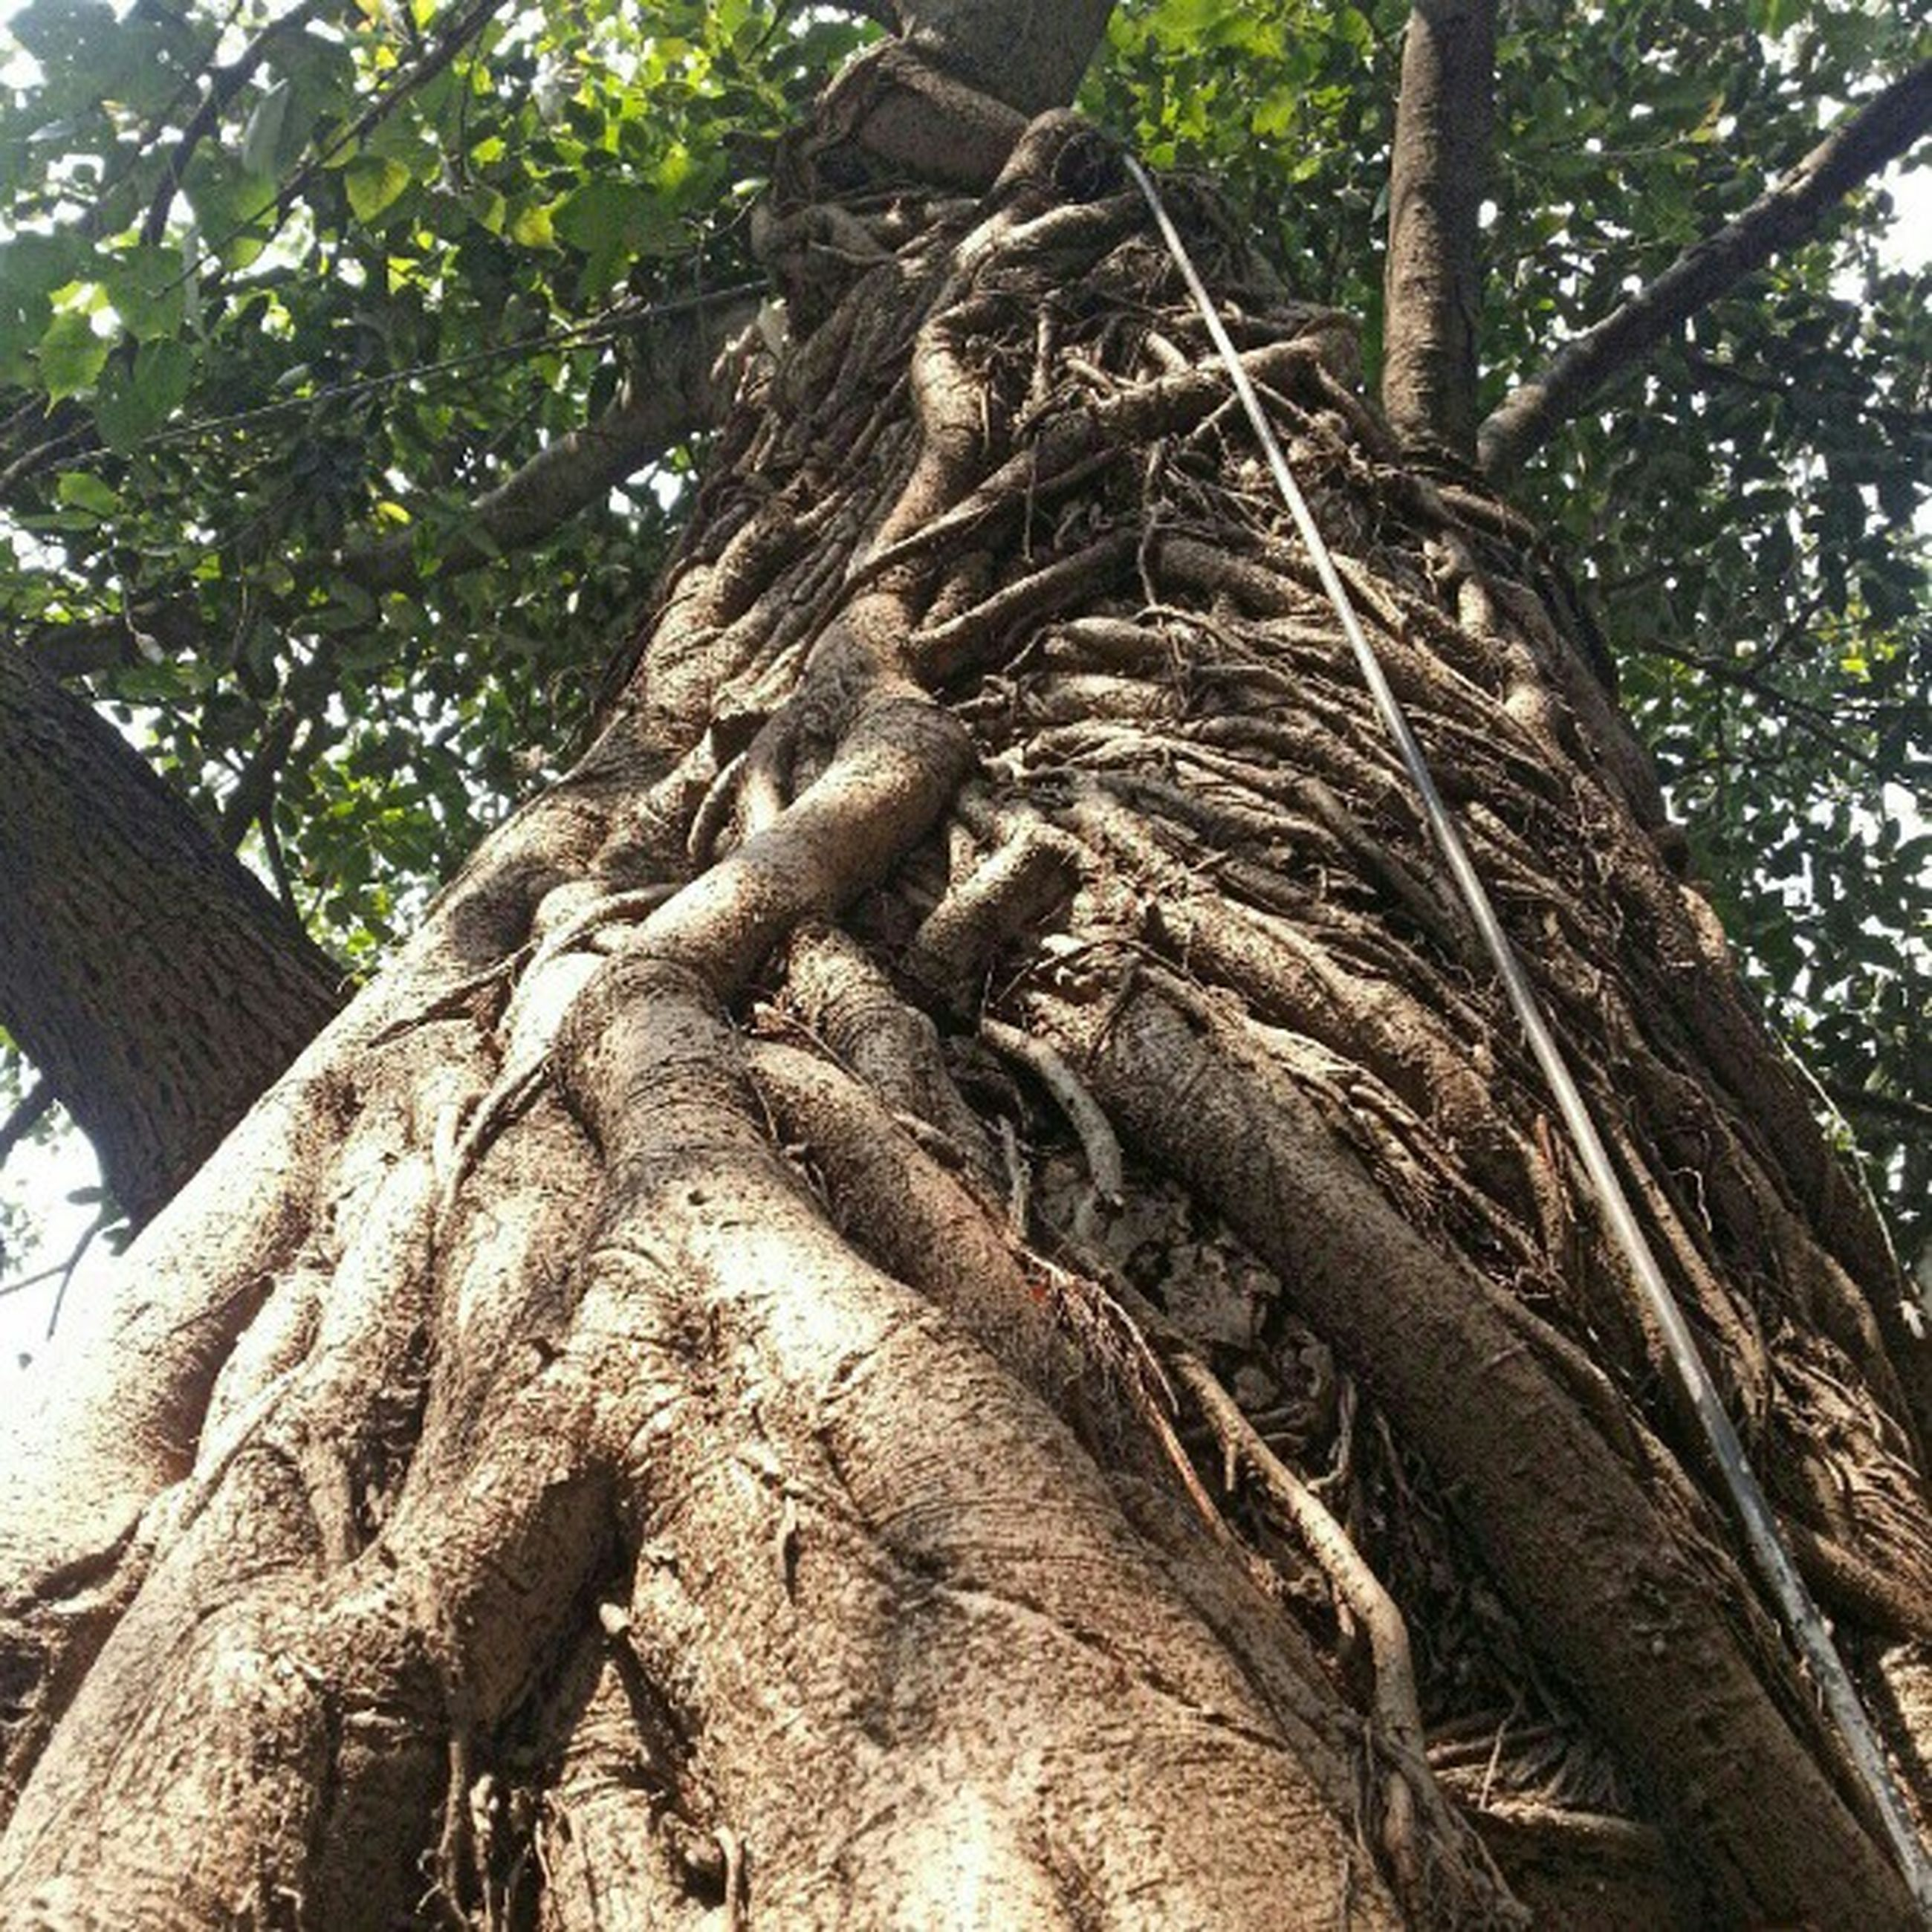 tree, tree trunk, low angle view, branch, growth, nature, forest, tranquility, bark, textured, day, root, outdoors, wood - material, no people, woodland, sky, sunlight, close-up, beauty in nature